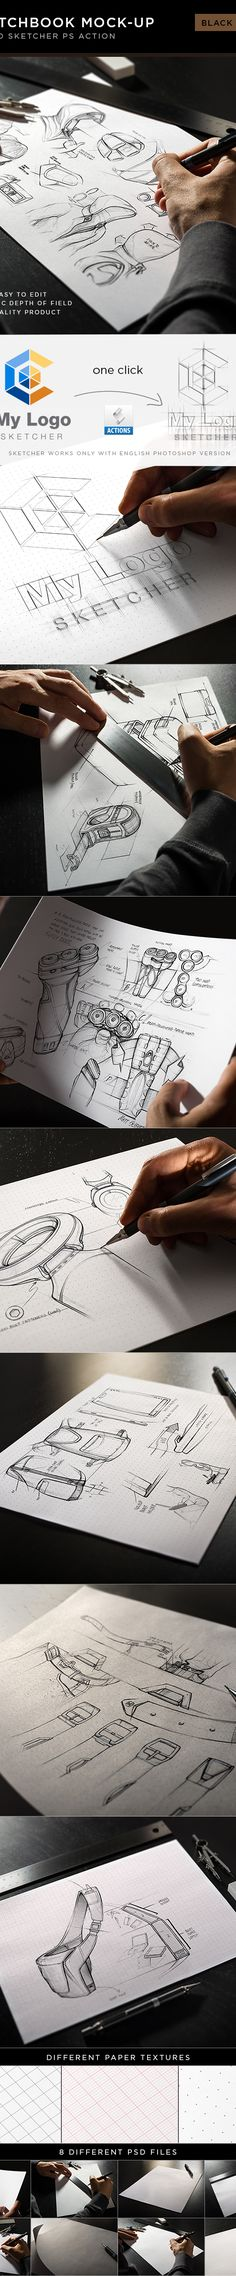 https://www.behance.net/gallery/17465283/Sketchbook-Mock-Up-Black-Edition Sketch PS Action and Templates